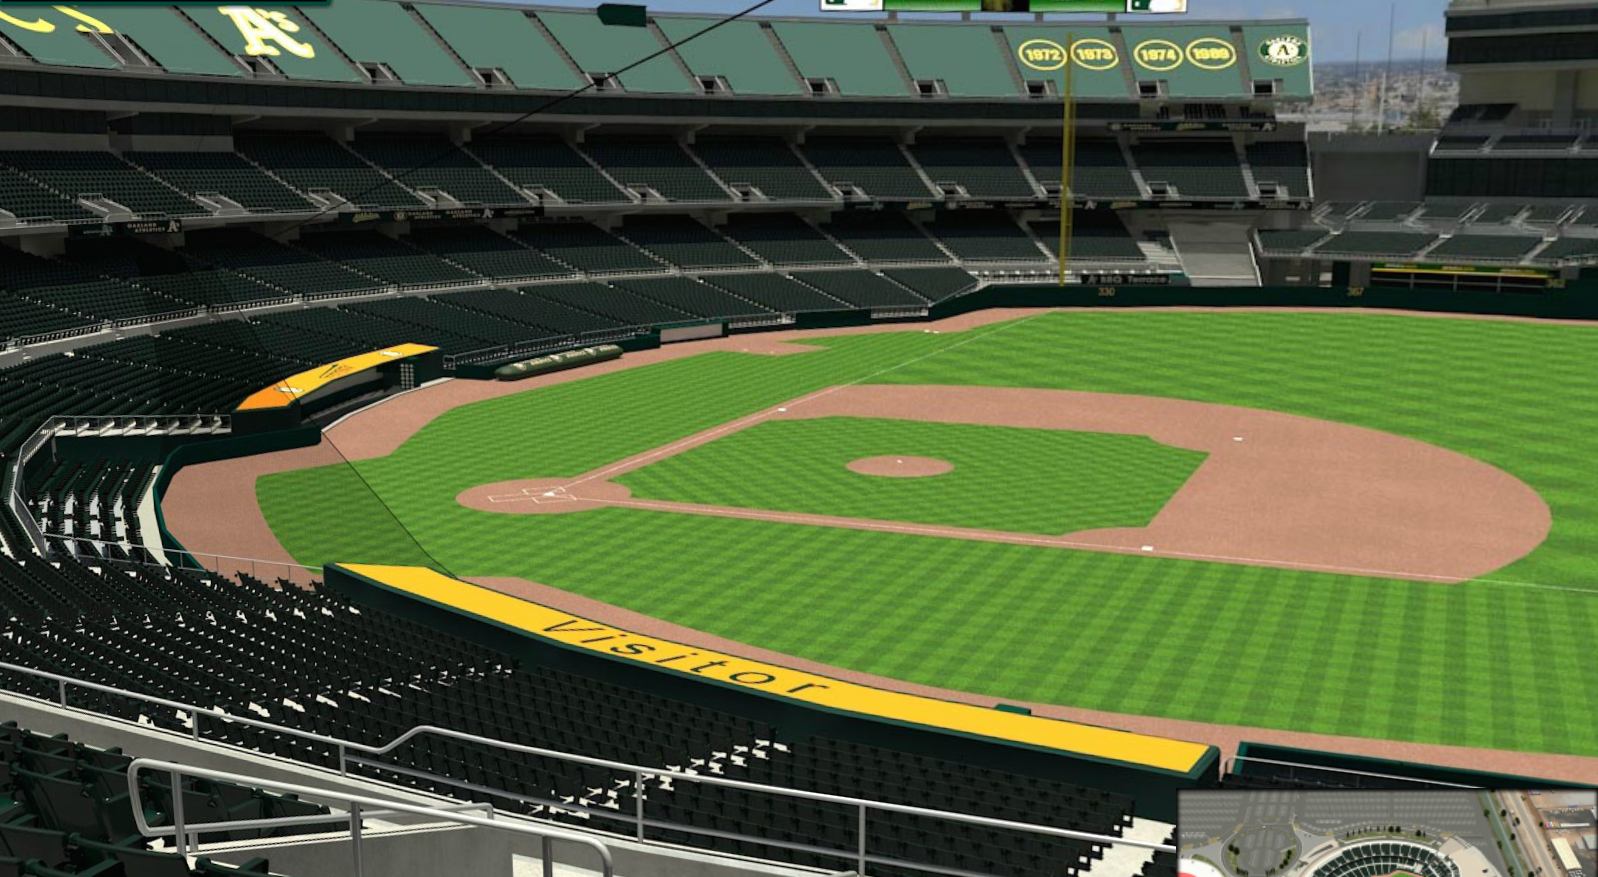 Lawsuit Asks Major League Baseball To Put Up Safety Nets All The Way